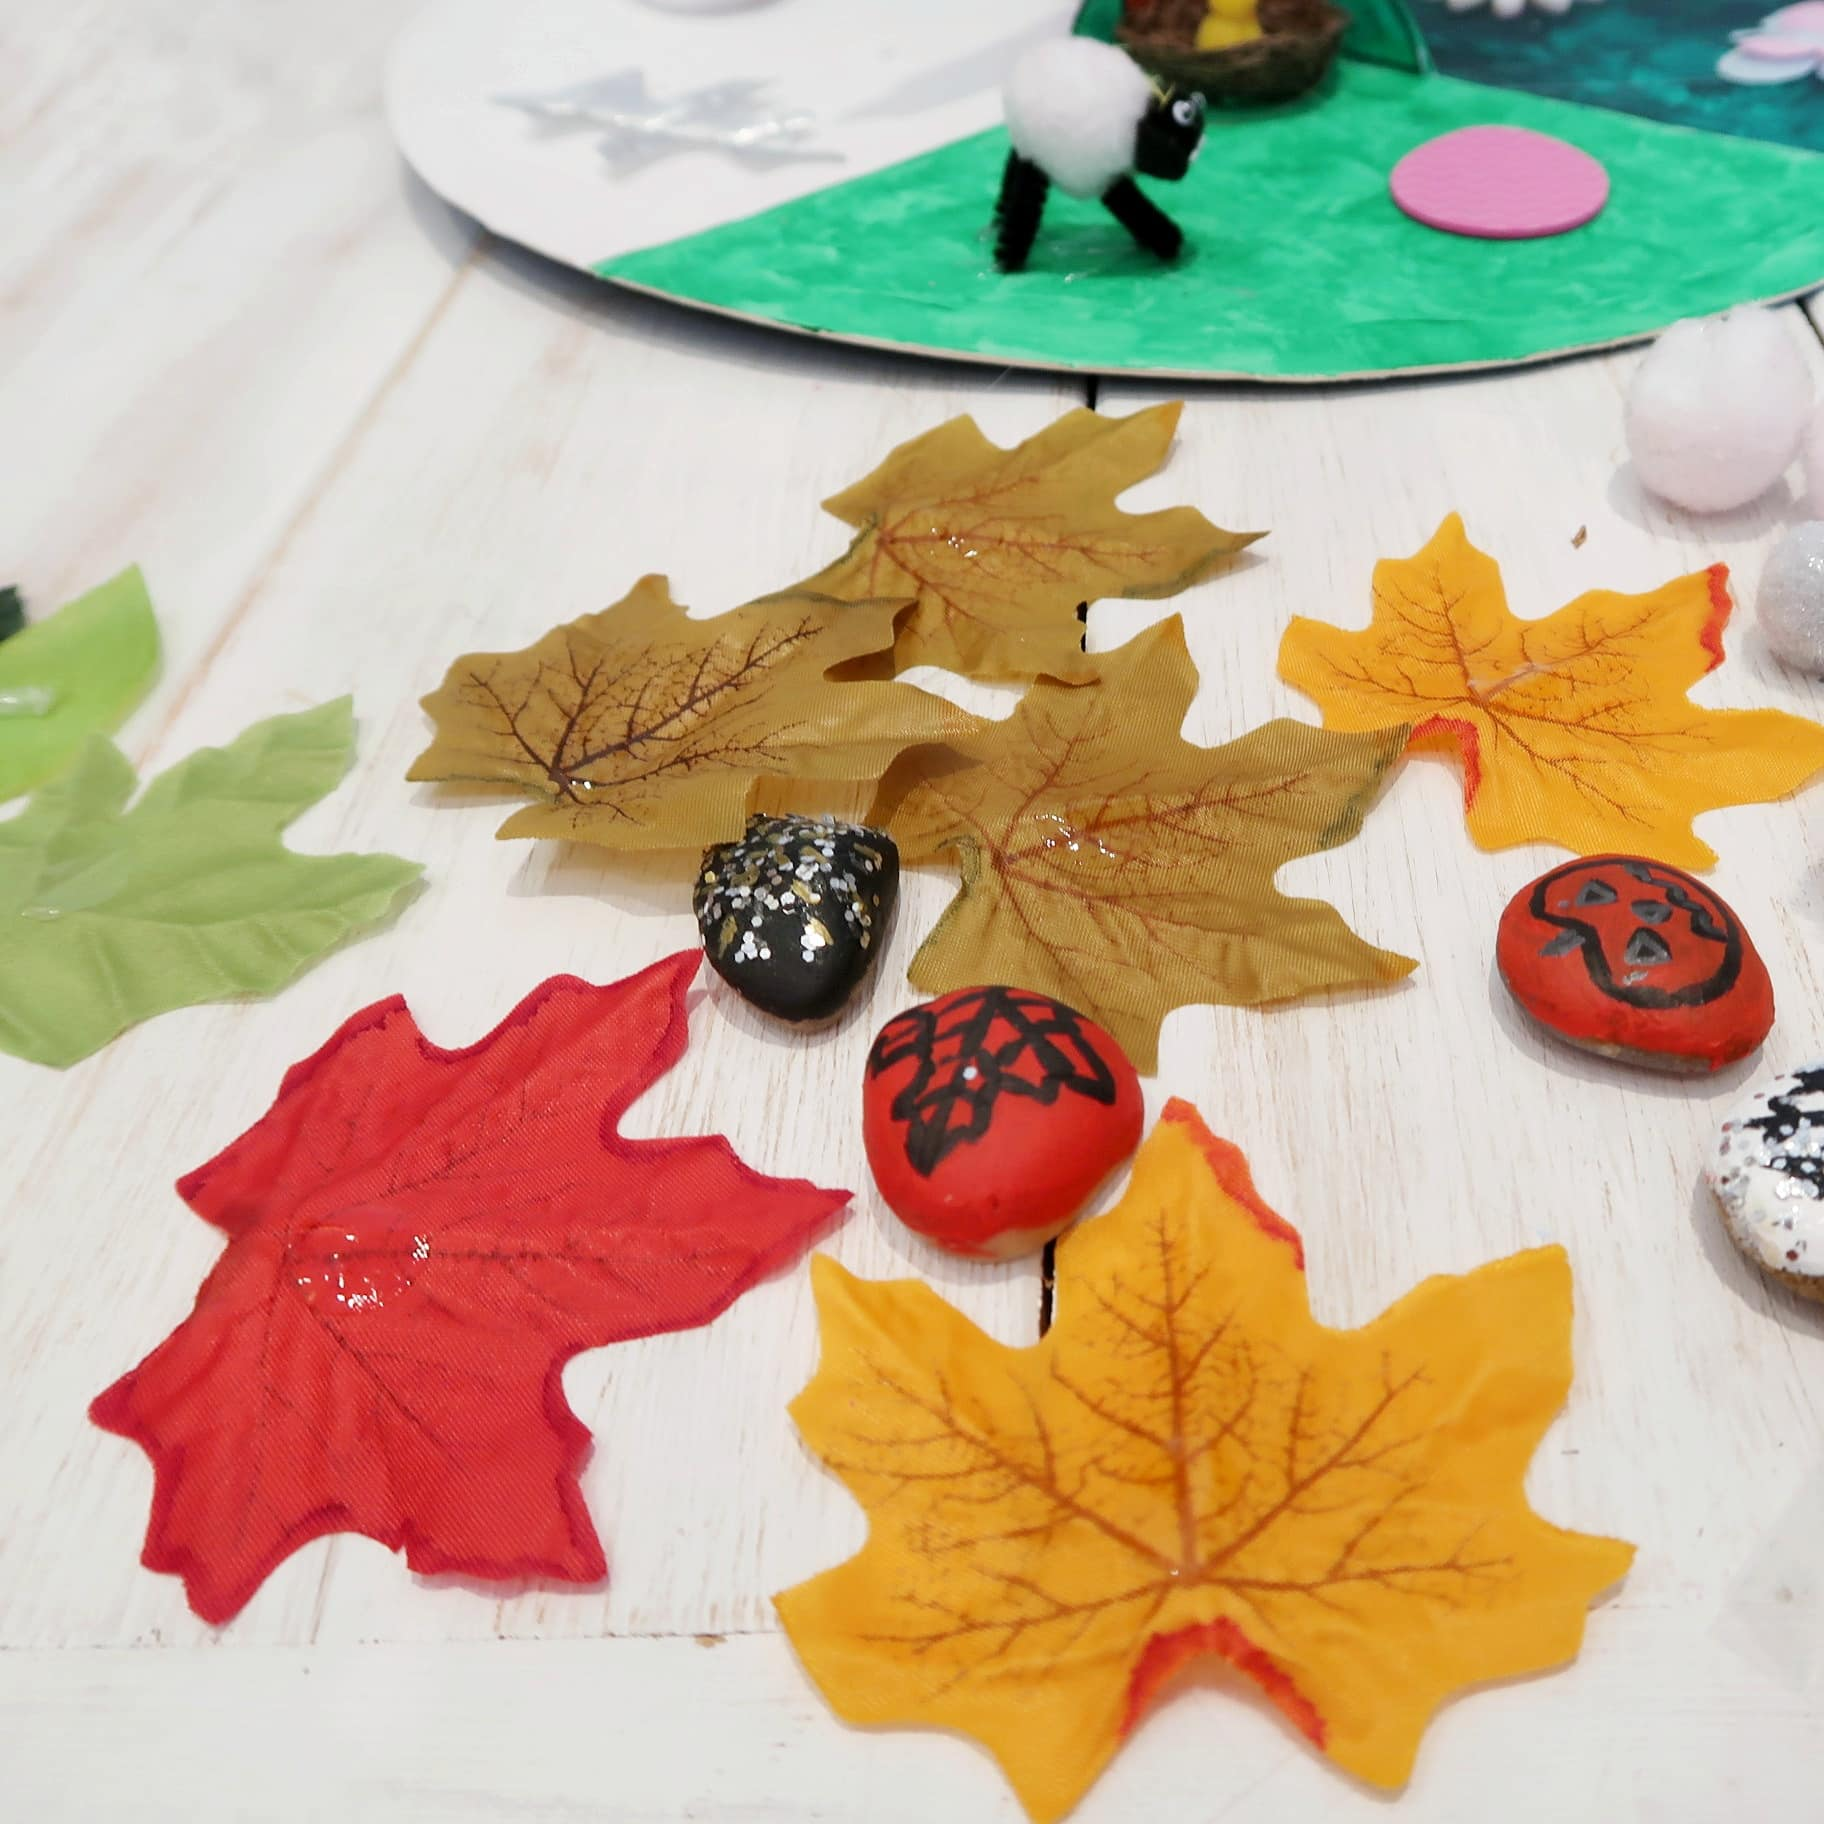 Season craft - Autumn themed painted rocks with a pumpkin, fireworks and a fallen red leaf